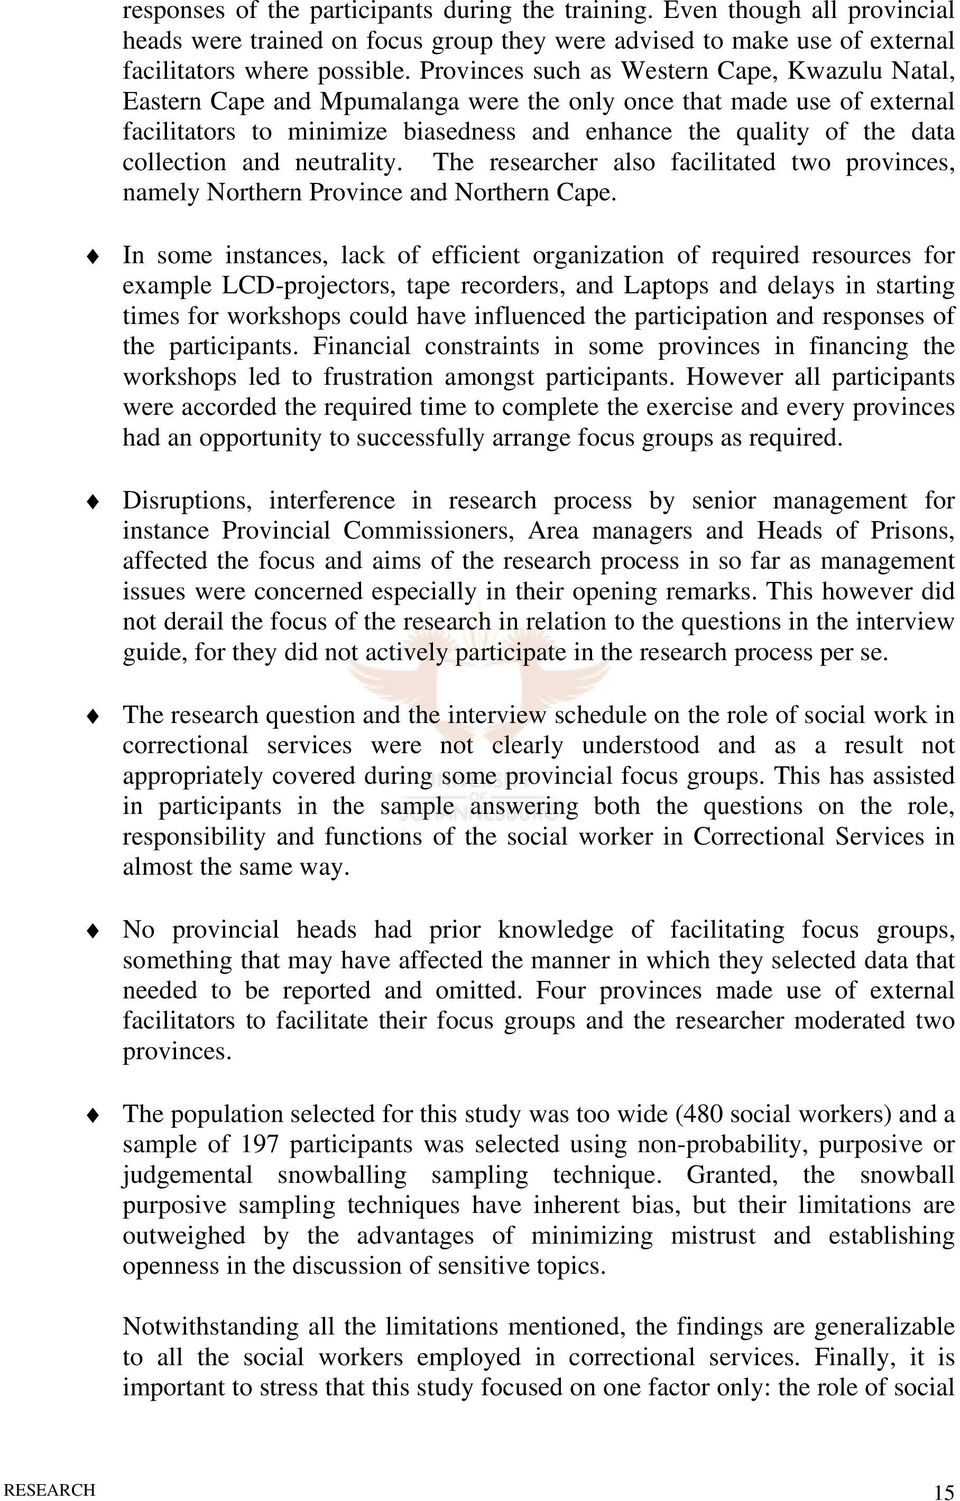 Employment Outlook & Career Guidance for Corrections Social Workers